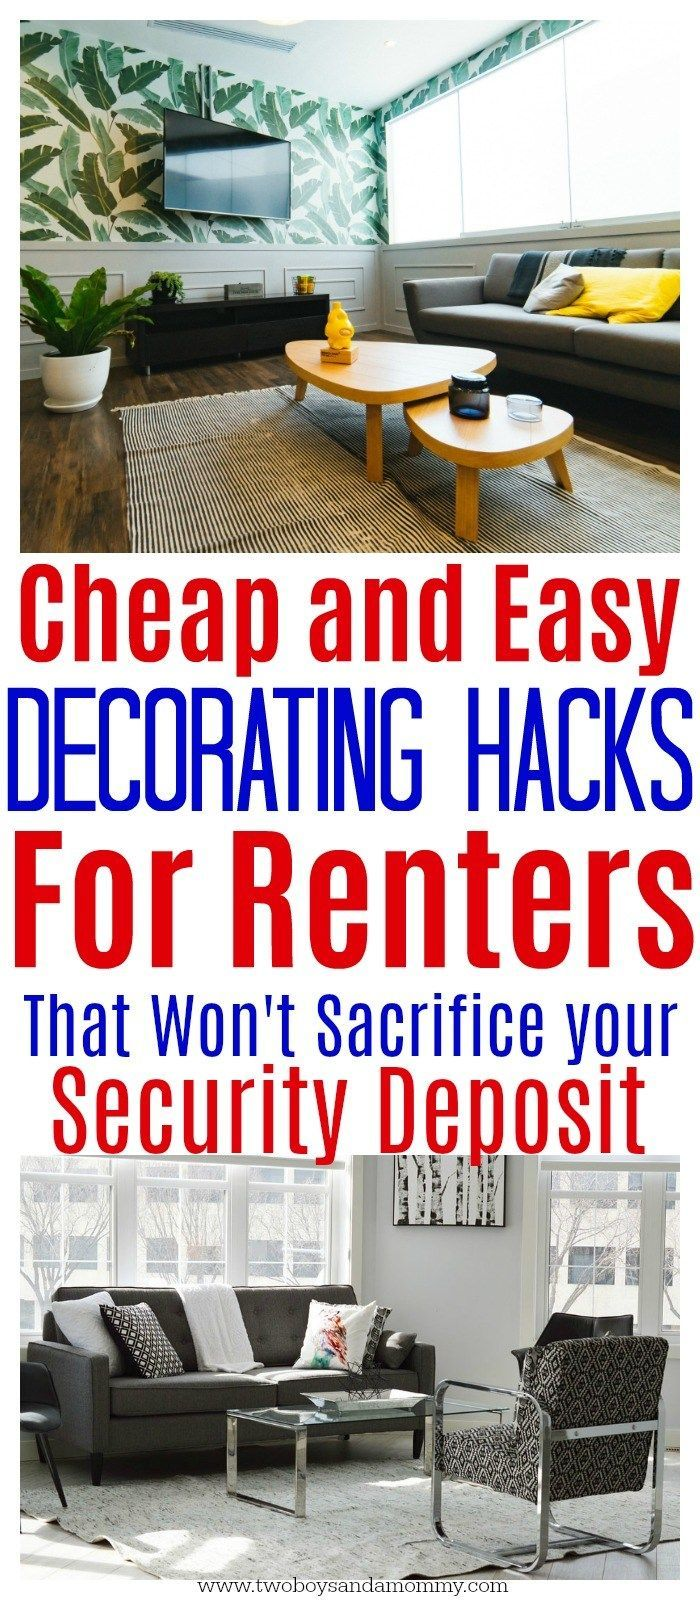 Cheap and Easy Decorating Ideas for Renters | #homedecor #rental #rentalproperty #decorating #hacks #easy #cheap | Apartment decoration ideas